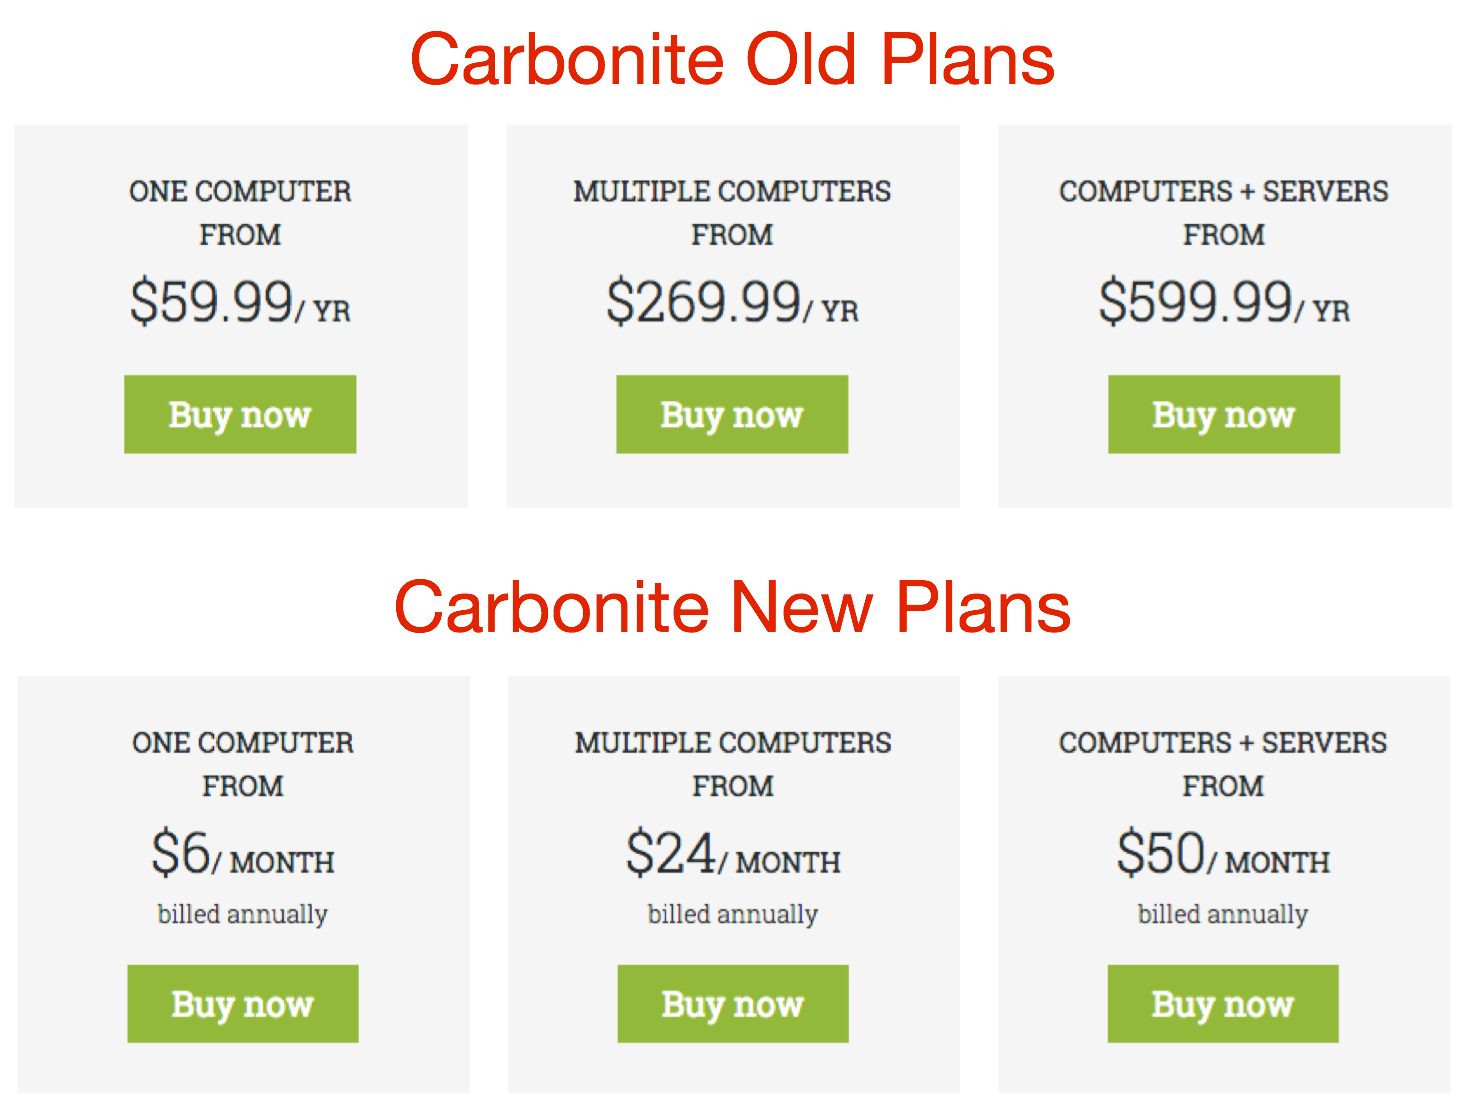 Carbonite raises online backup prices tidbits podcast to the companys credit carbonite is keeping the crashplan discount prices the same so theyre now better than 50 percent for the first year thecheapjerseys Choice Image